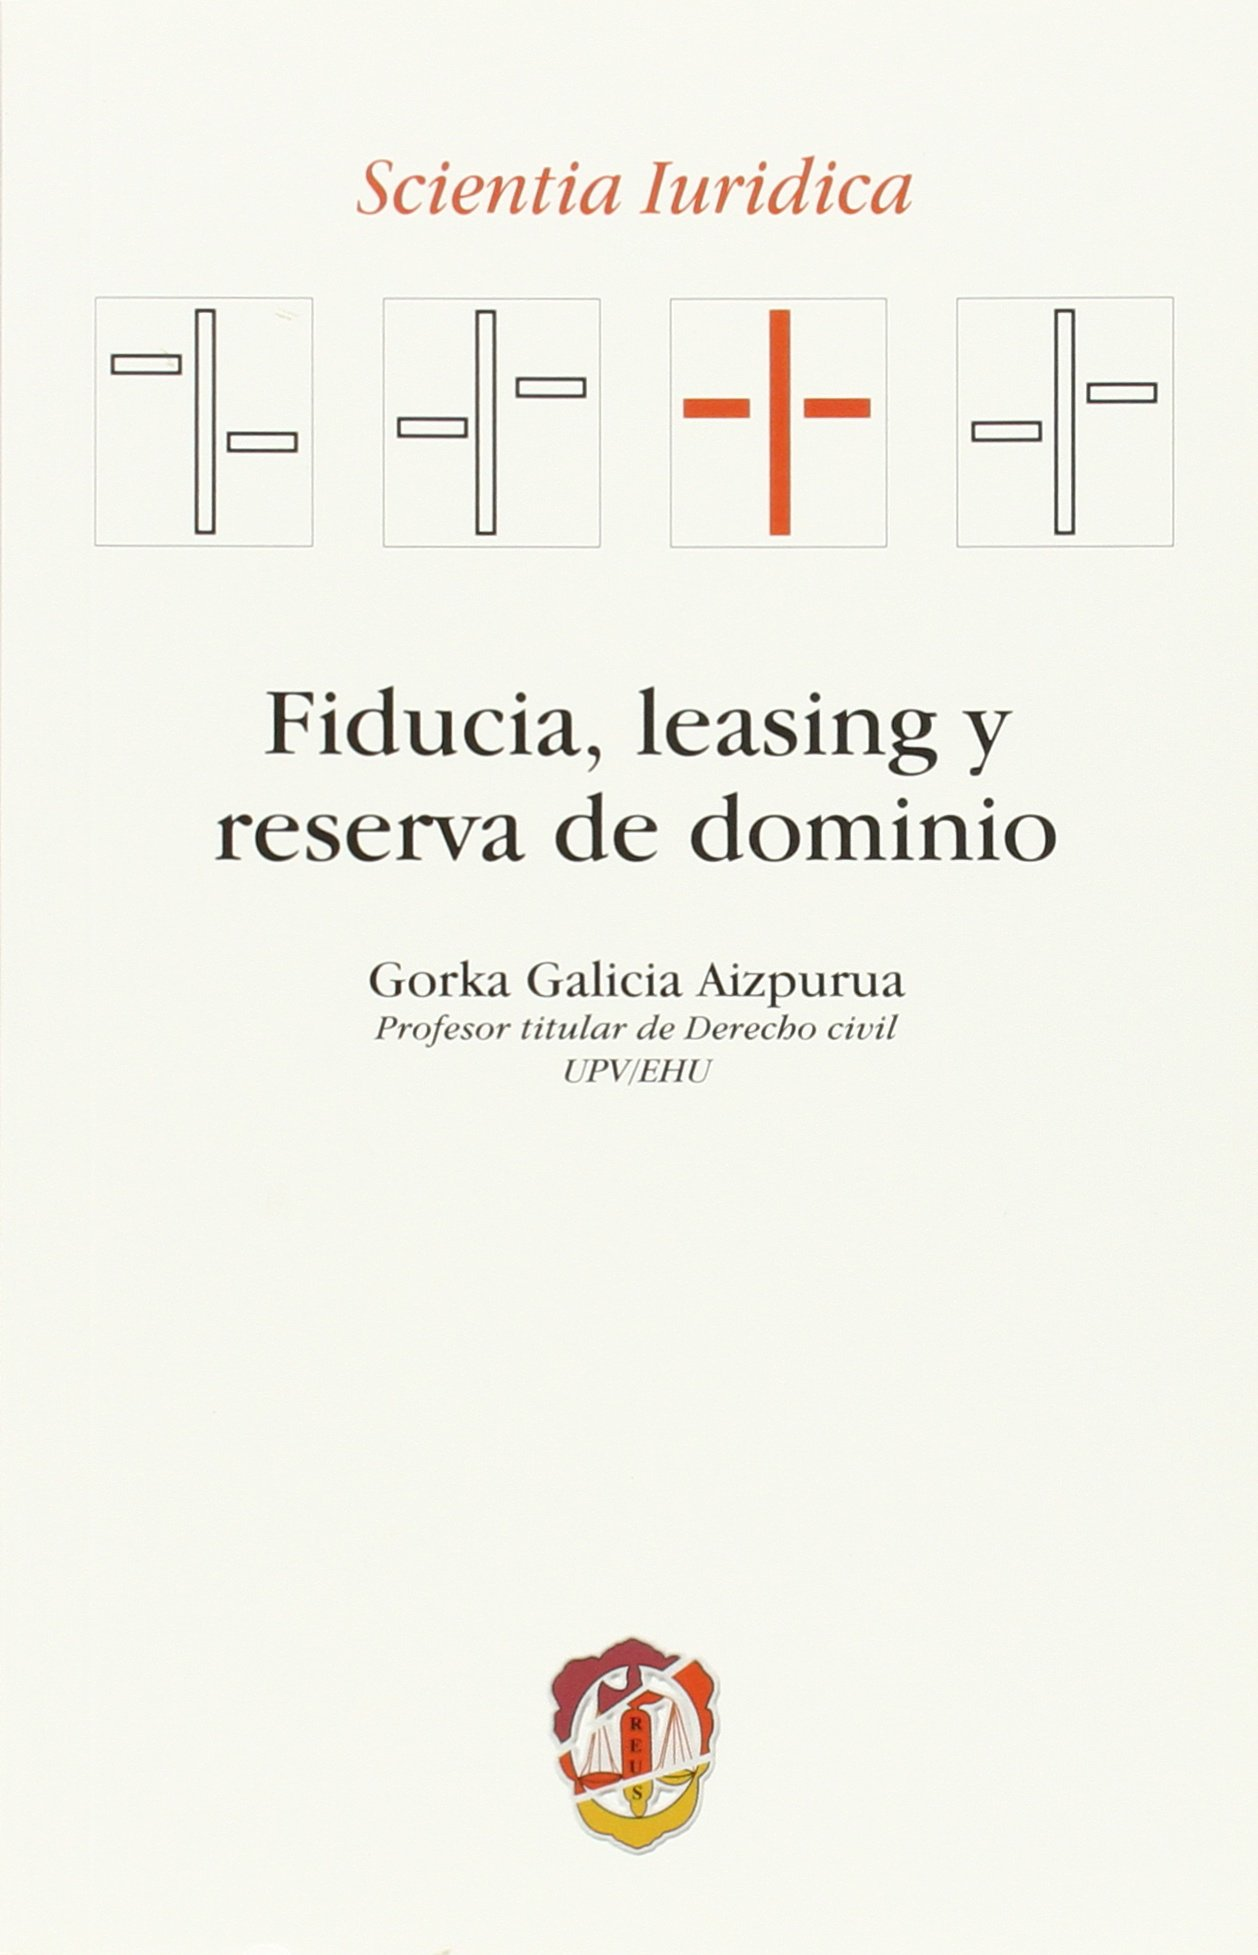 Fiducia, leasing y reserva de dominio Scientia iuridica: Amazon.es: Gorka Horacio Galicia Aizpurua: Libros